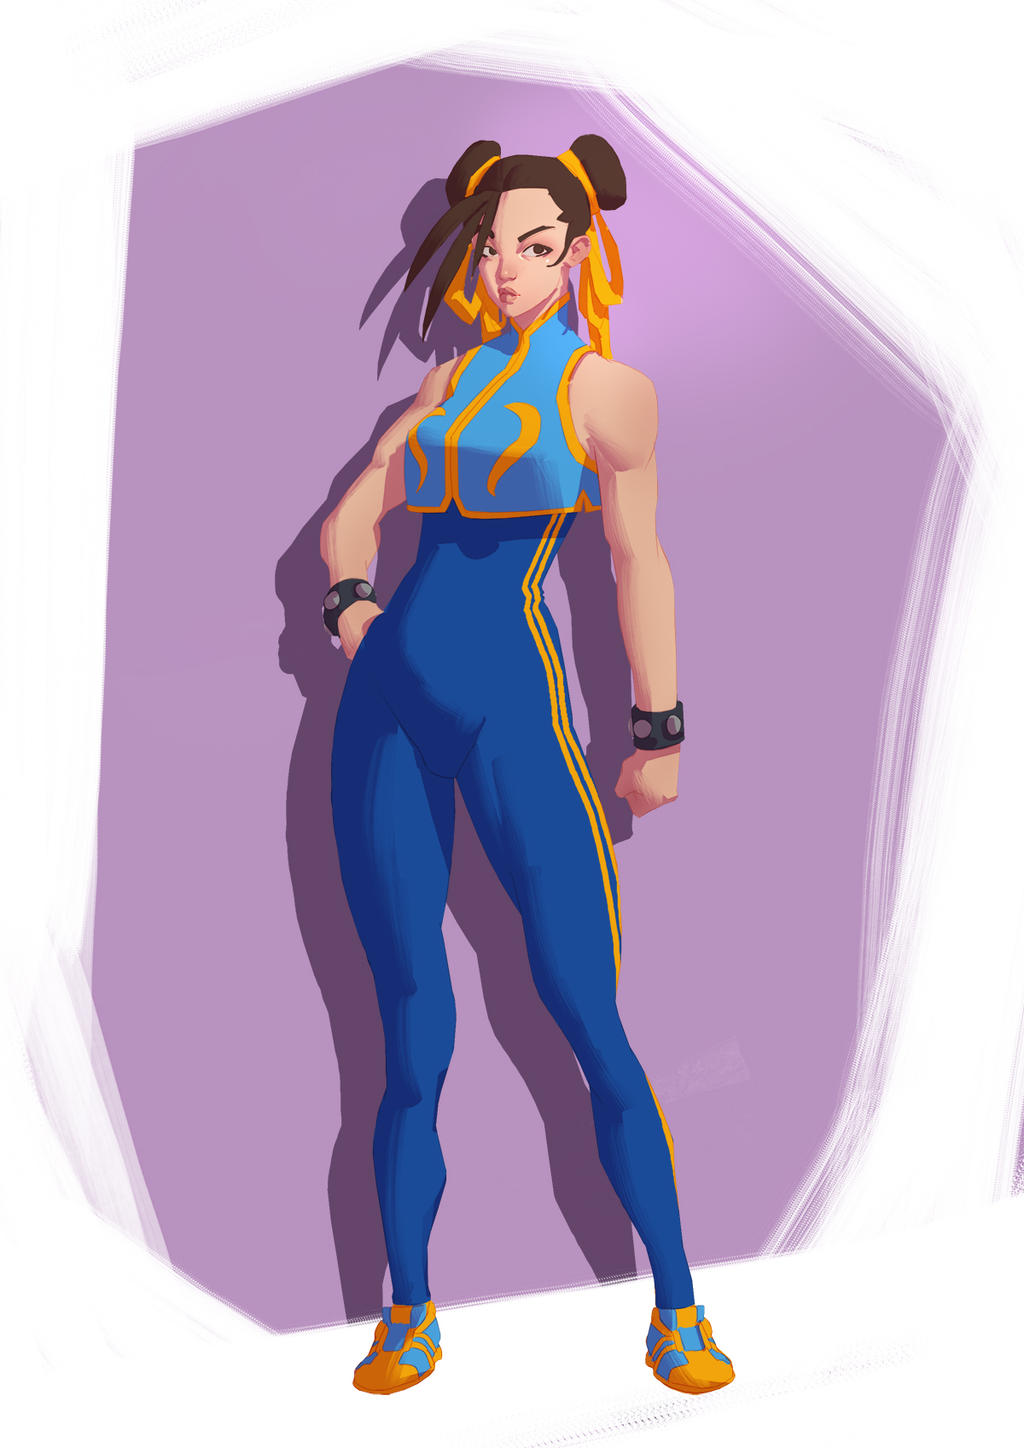 Chun Li by orochi-spawn